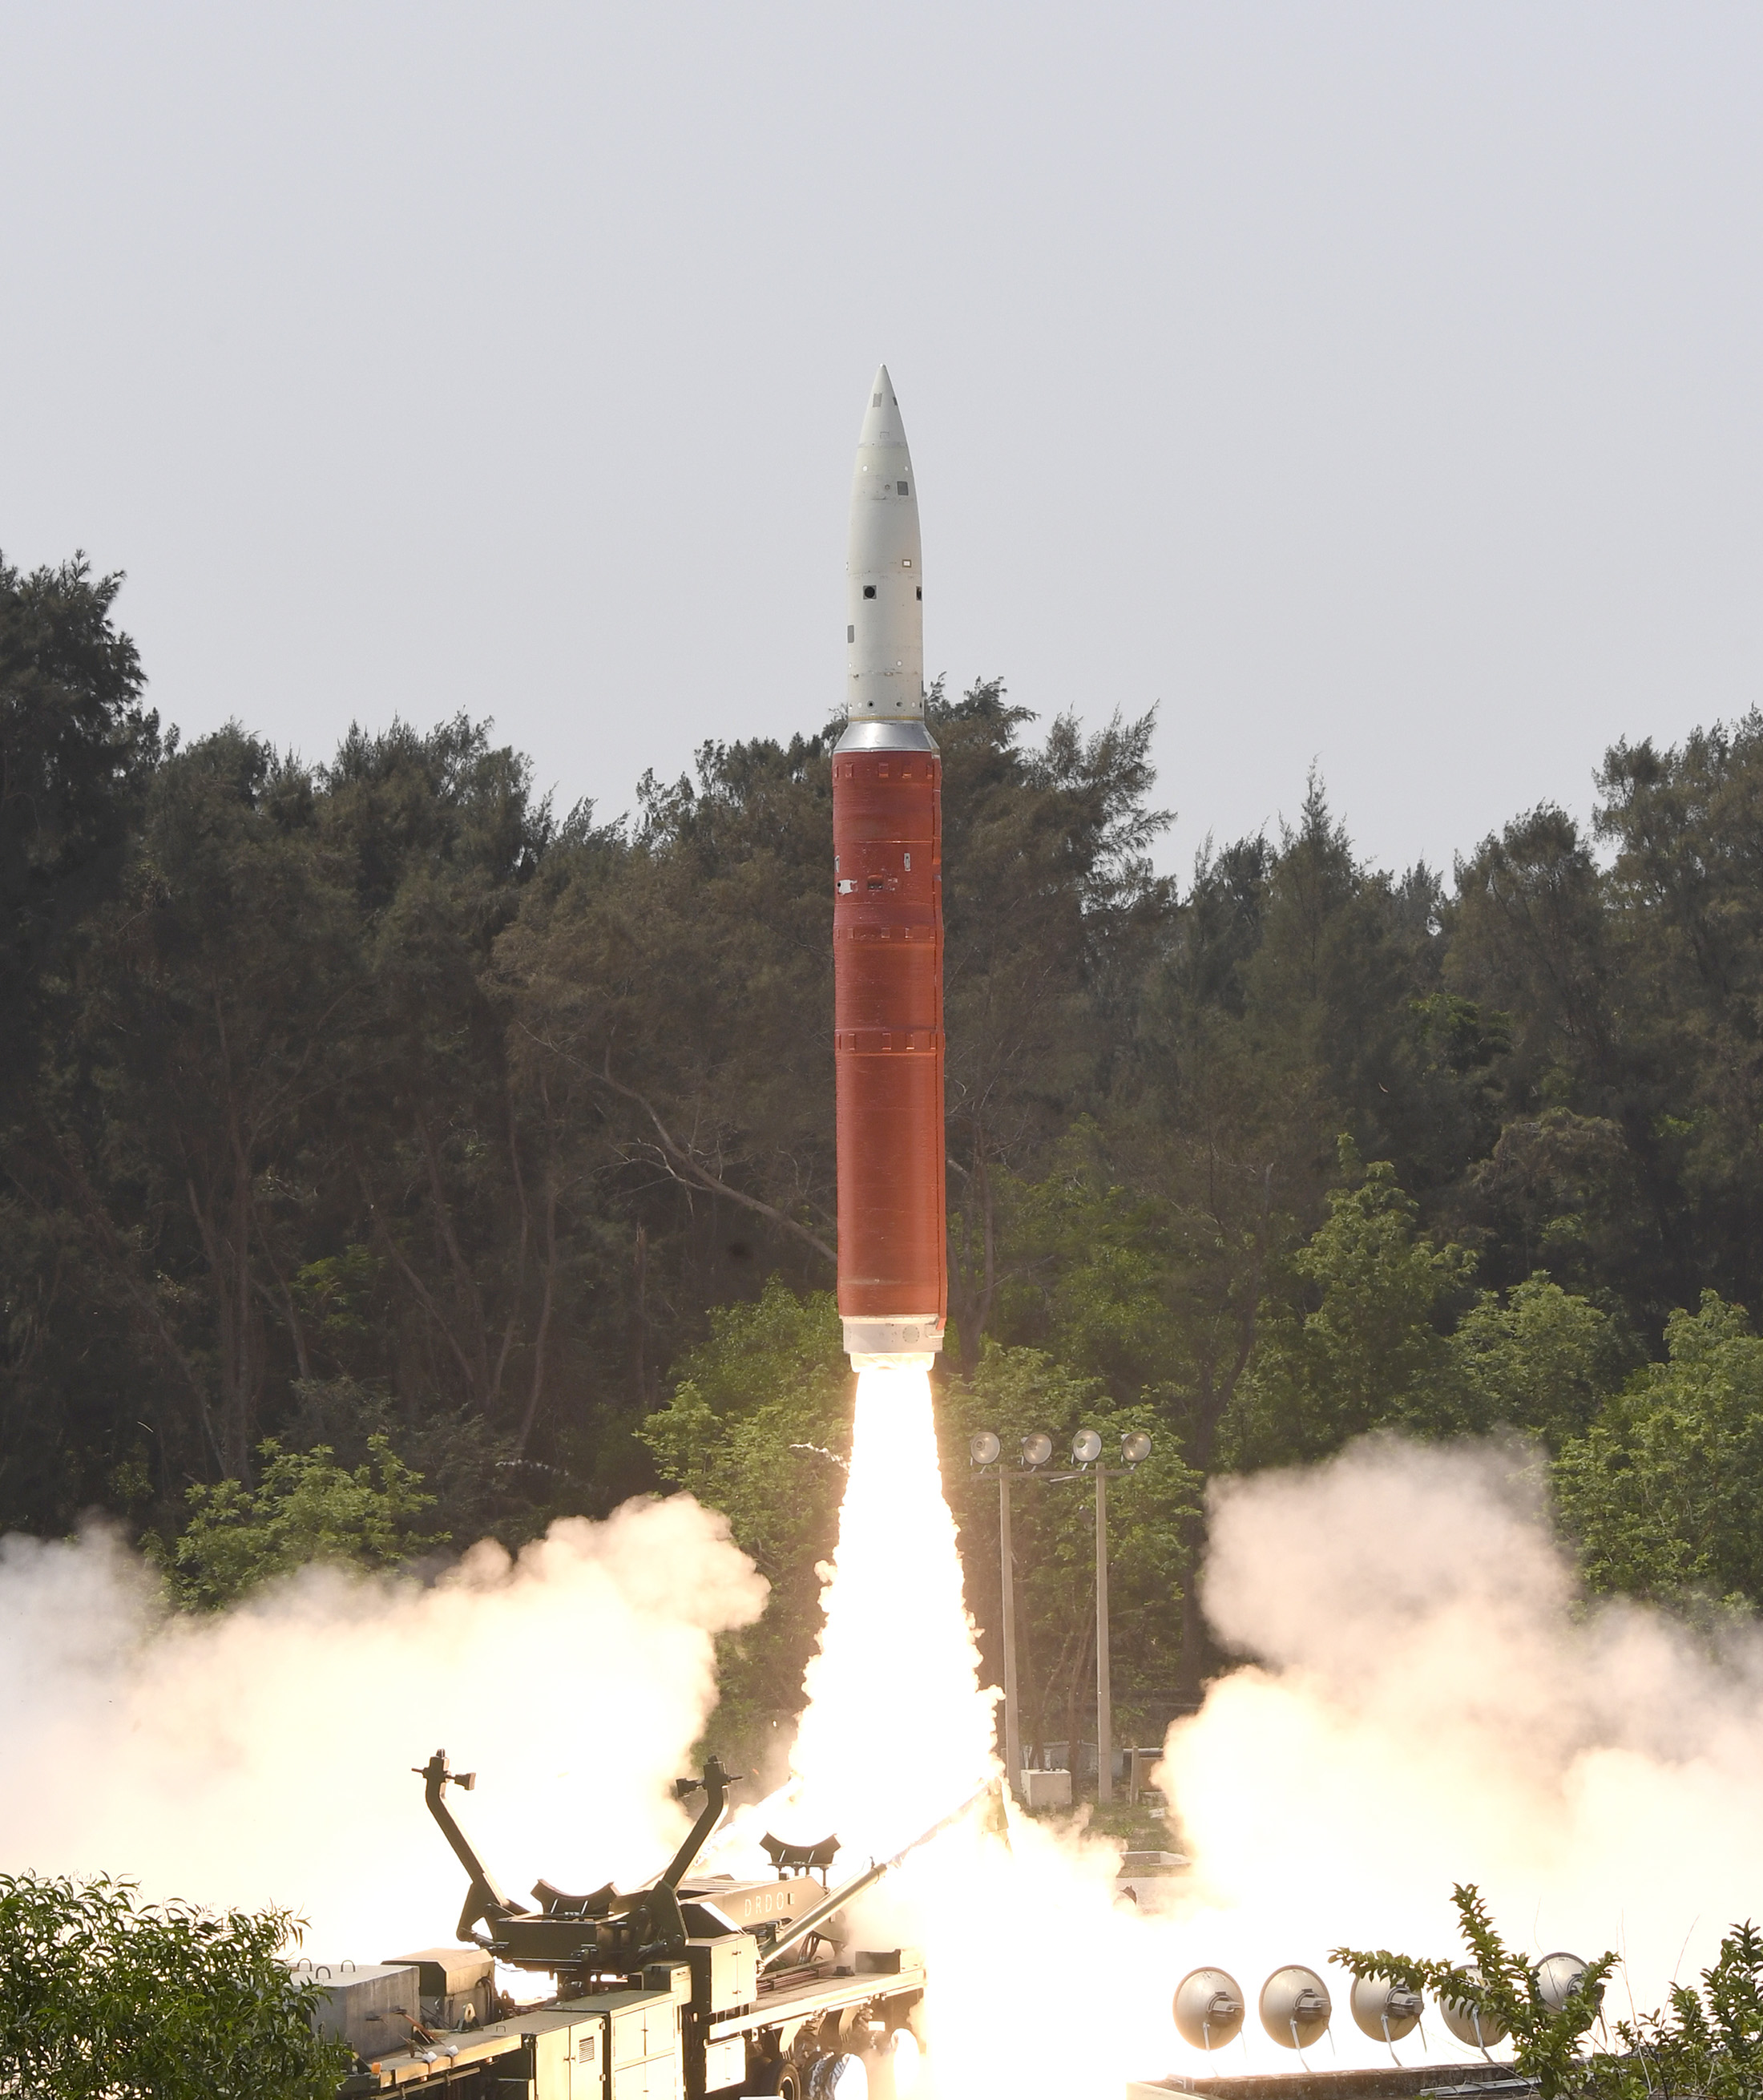 launch_of_drdos_ballistic_missile_defence_interceptor_missile_for_an_asat_test_on_27_march_2019.jpg